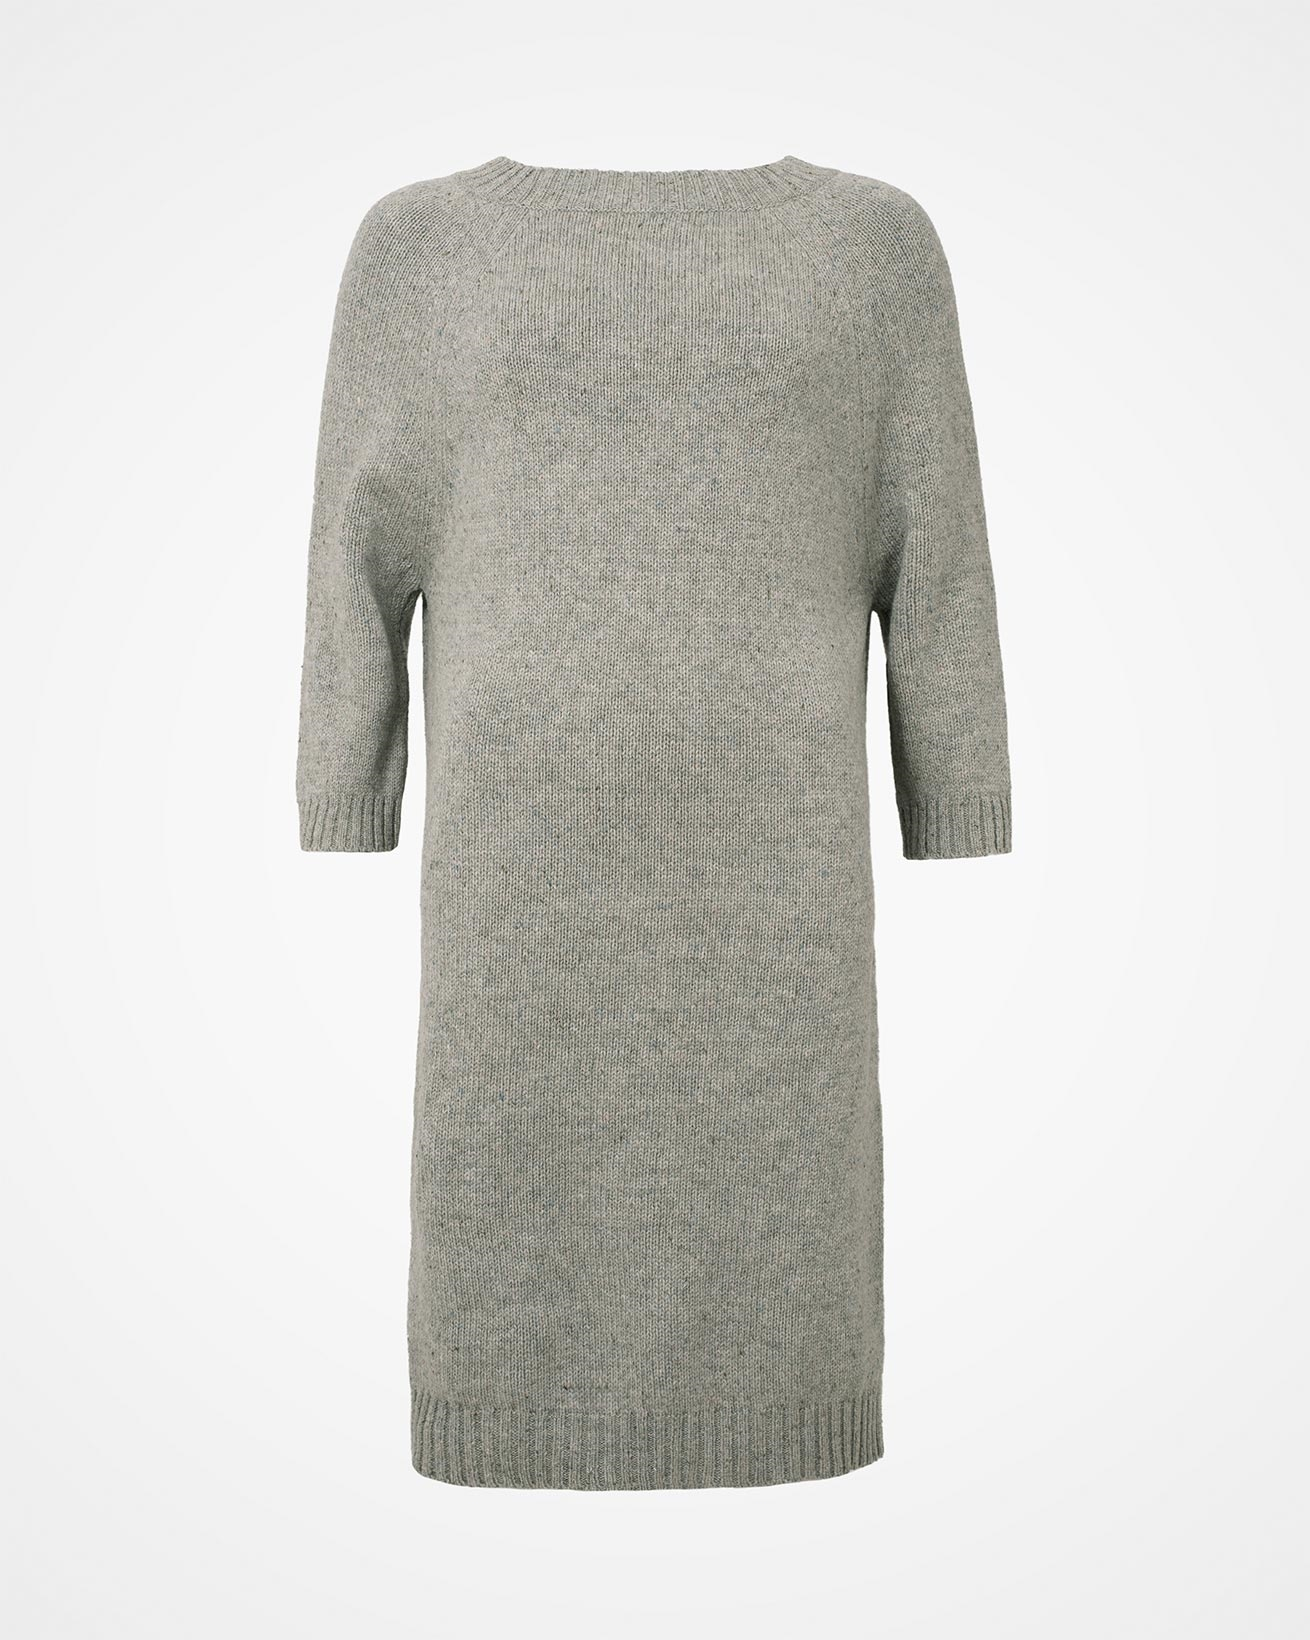 7715_donegal-midi-dress_silver-grey_front.jpg